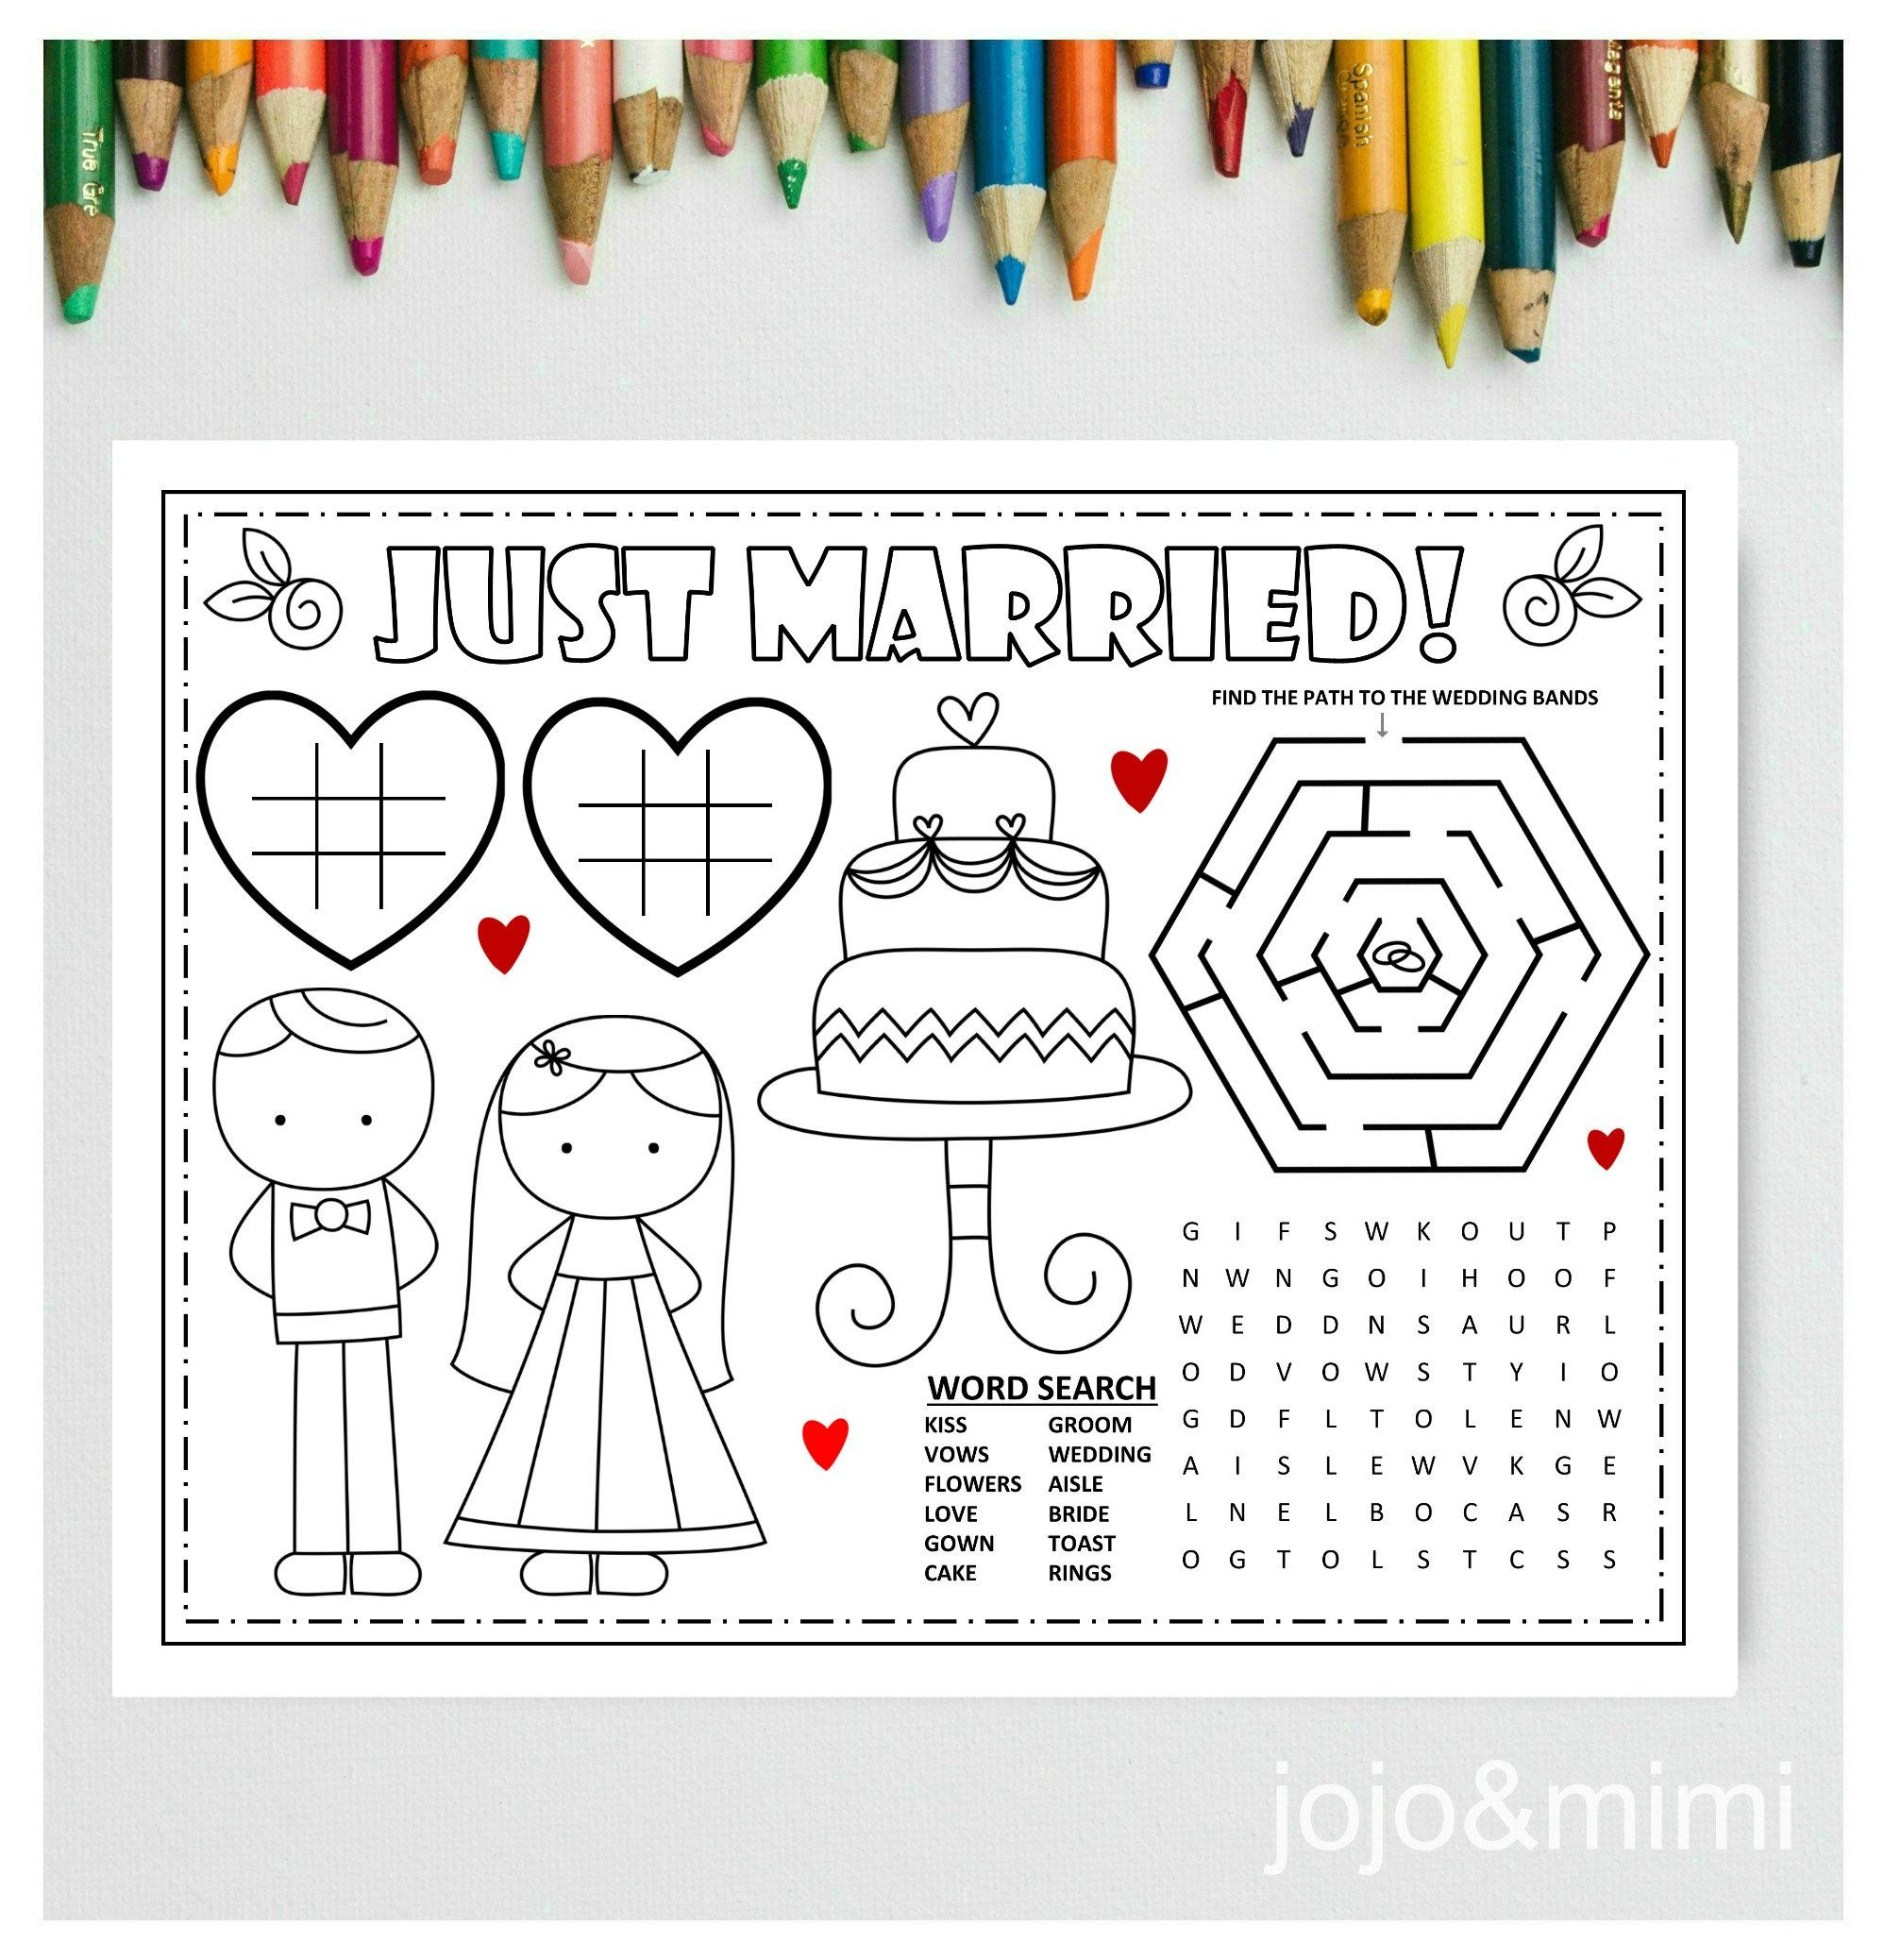 Wedding Printable Placemat Wedding Day Activity Kids Activity Etsy In 2020 Printable Placemat Wedding Coloring Pages Placemats Kids